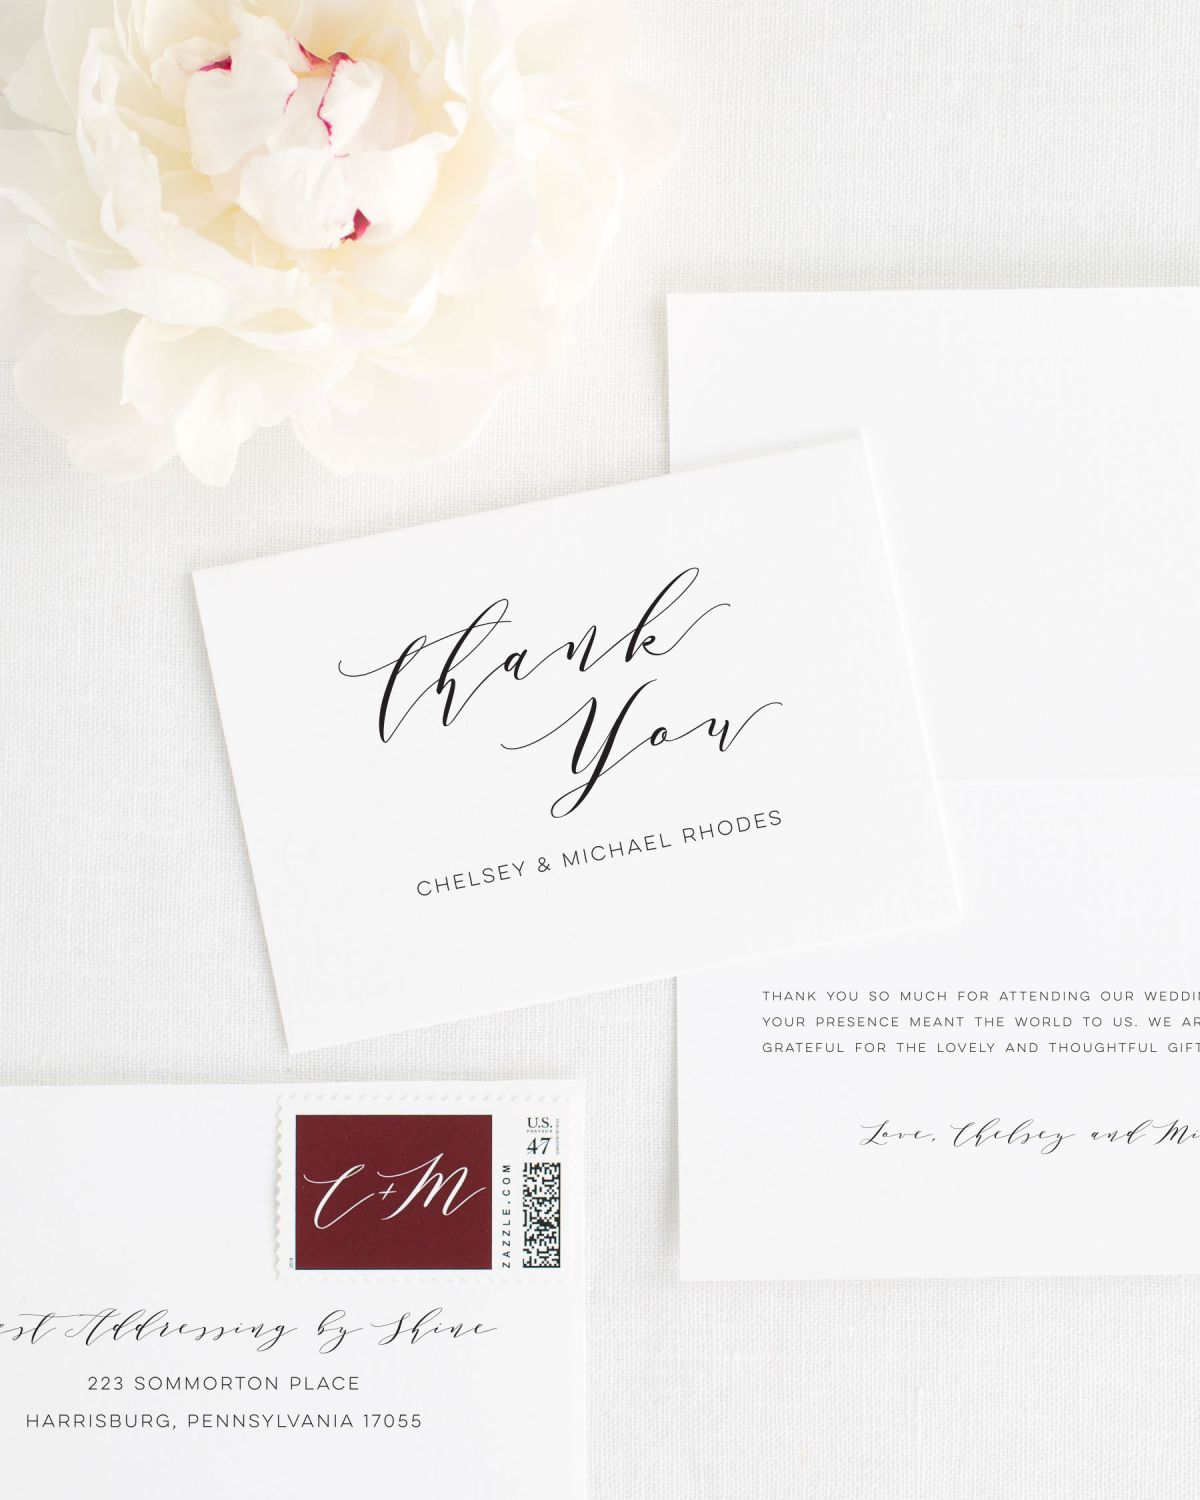 Dramatic Romance Thank You Cards - Thank You Cards by Shine